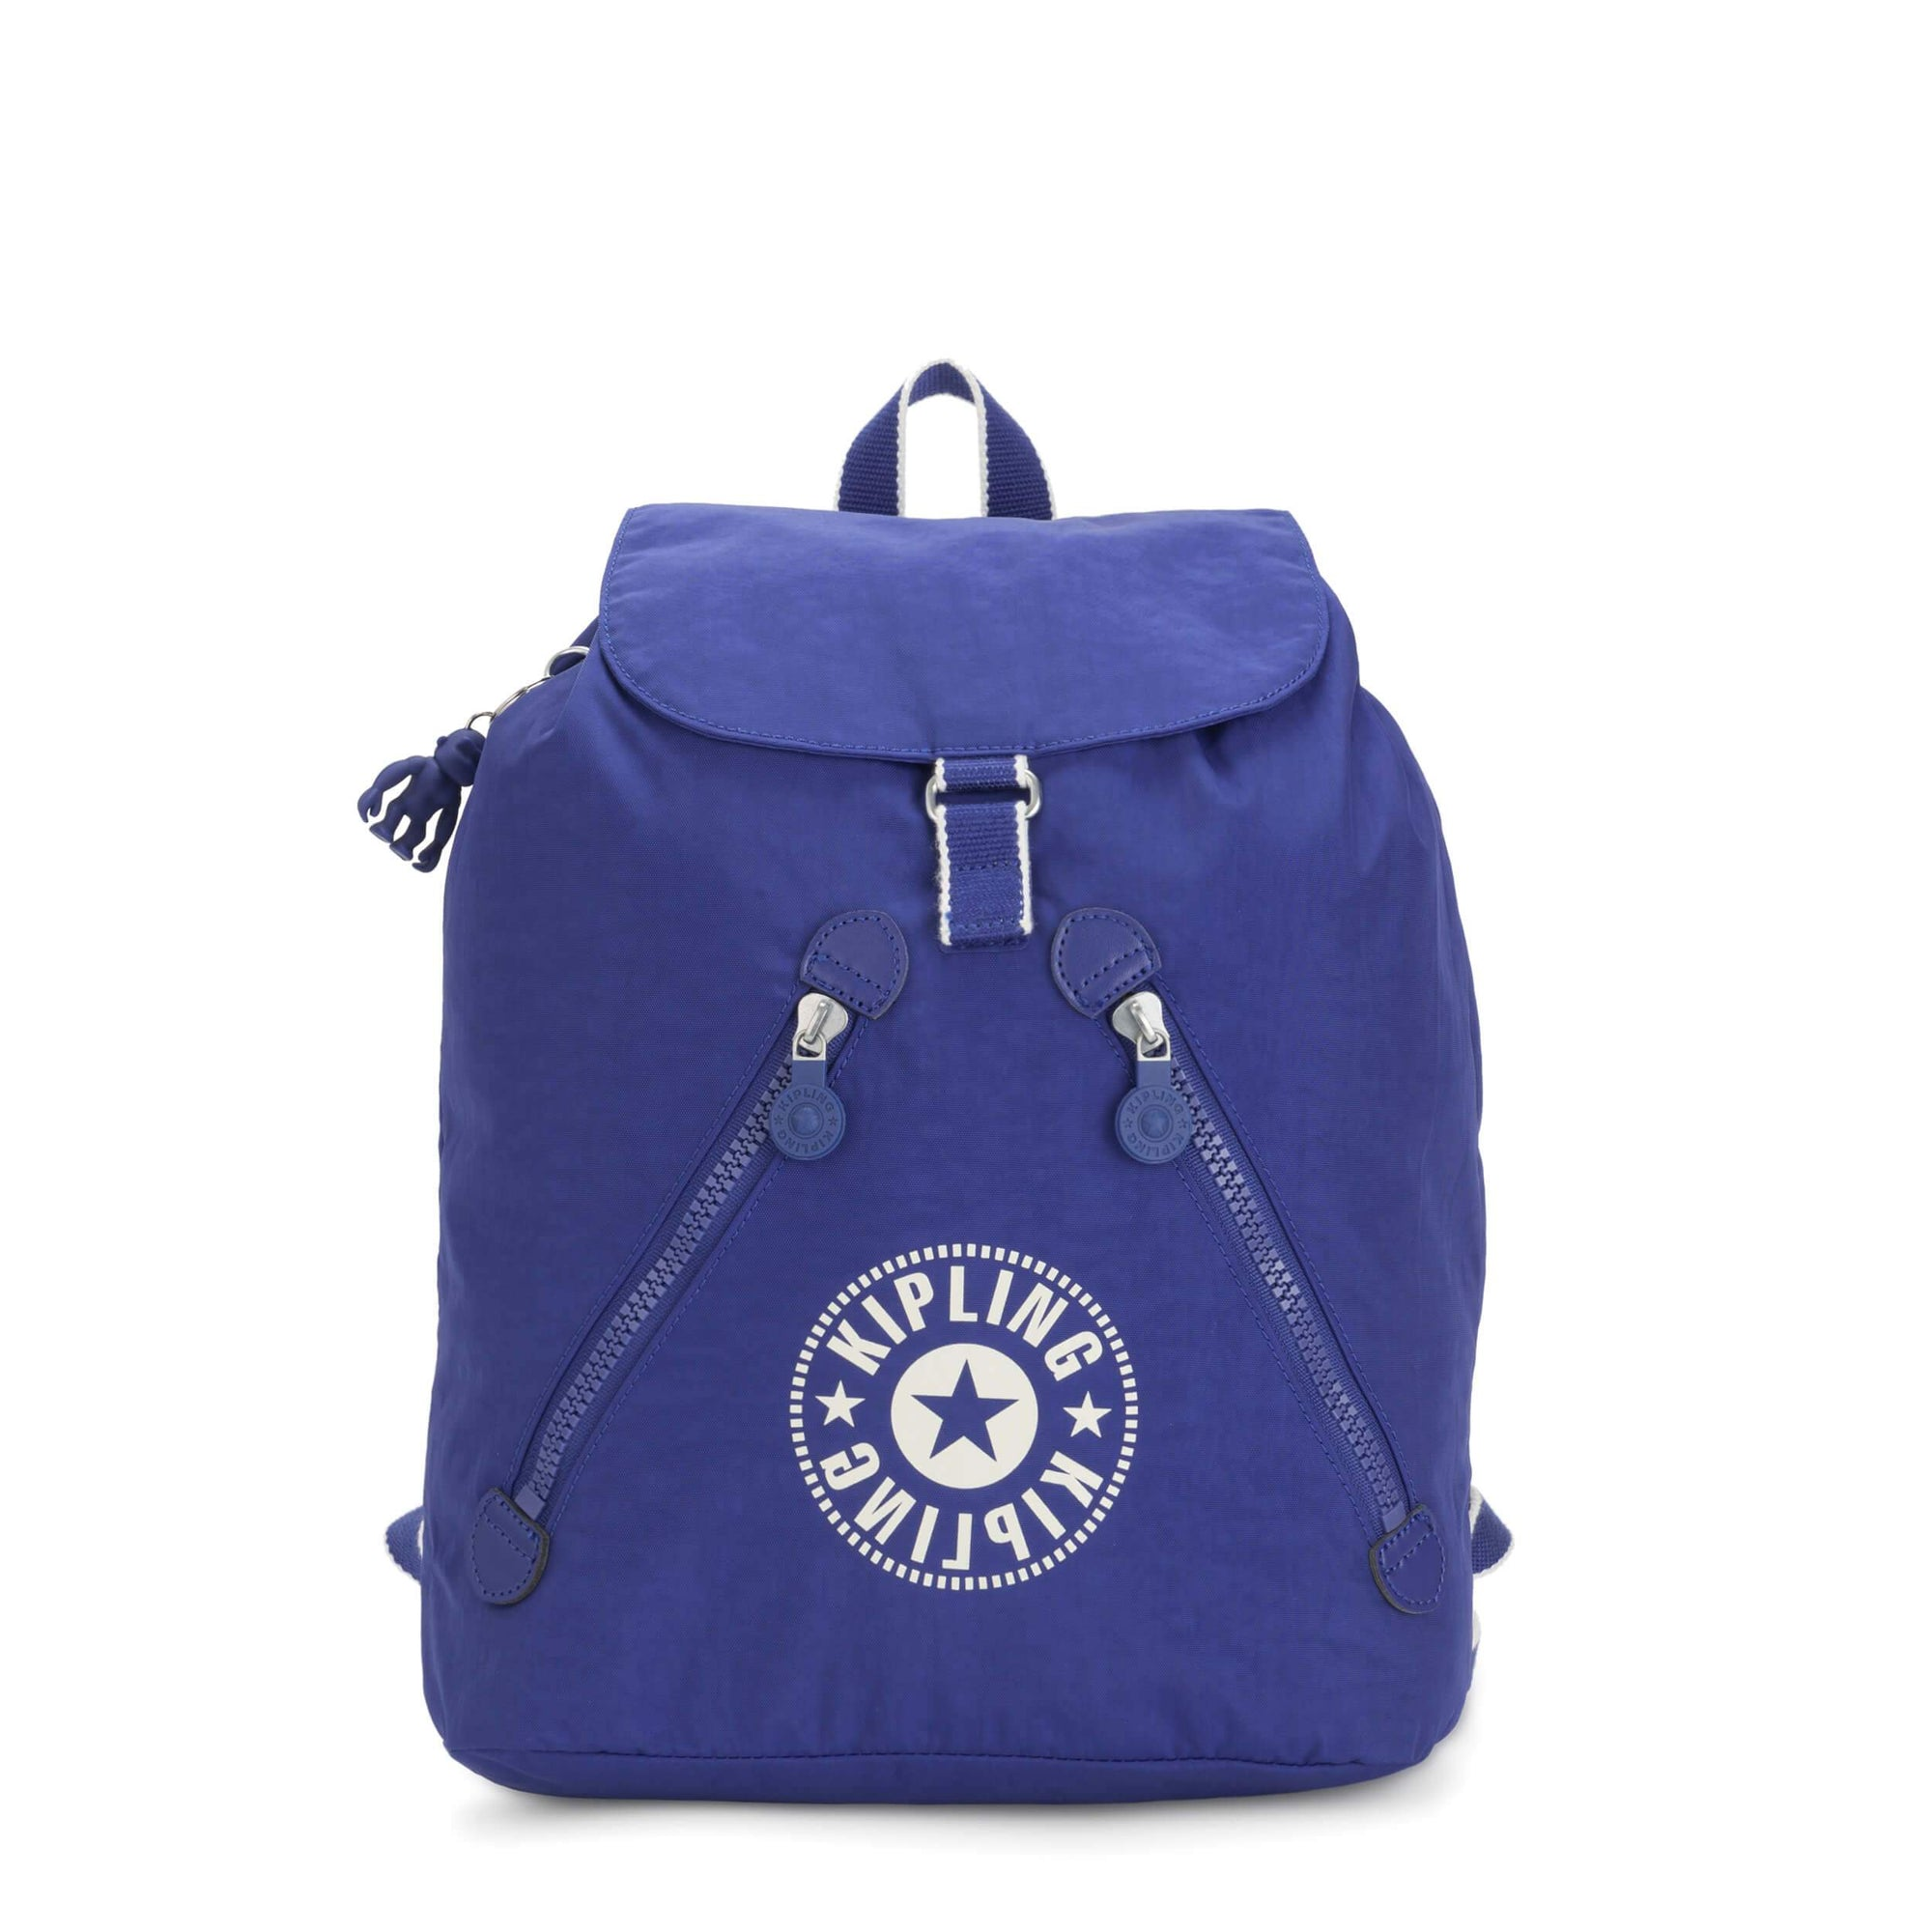 Backpack Kipling Fundamental Nc Laser Blue KI251947U